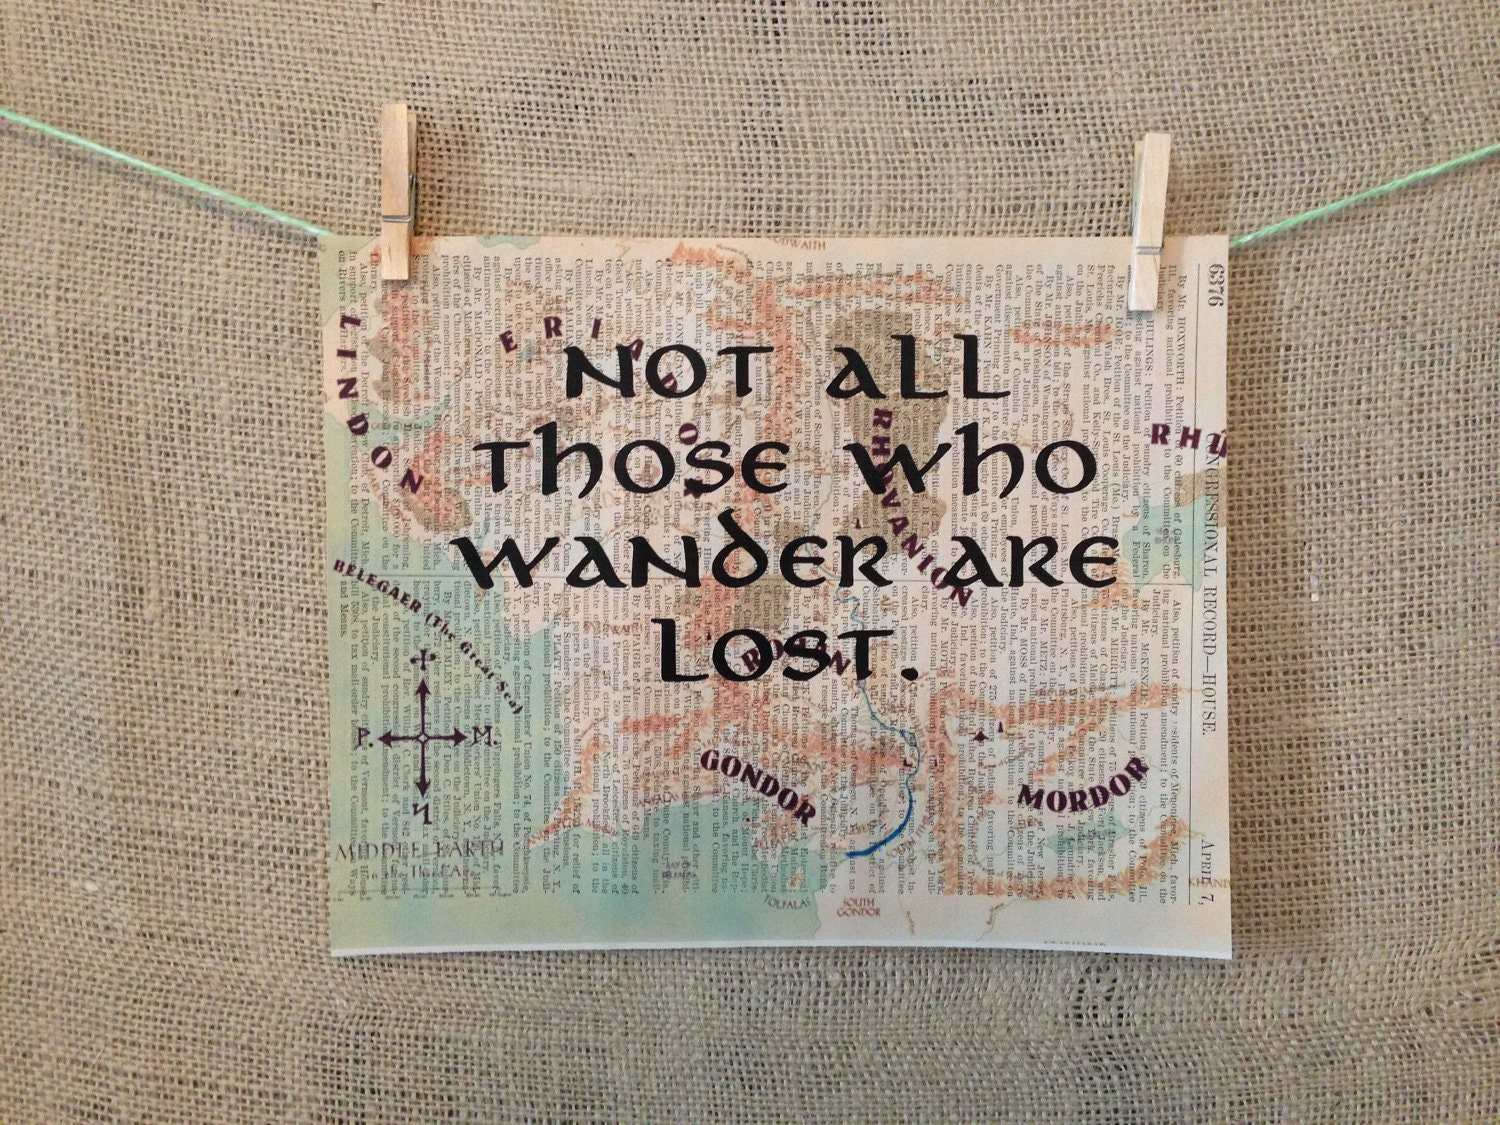 Not all those who wander are lost. Lord of the rings. The